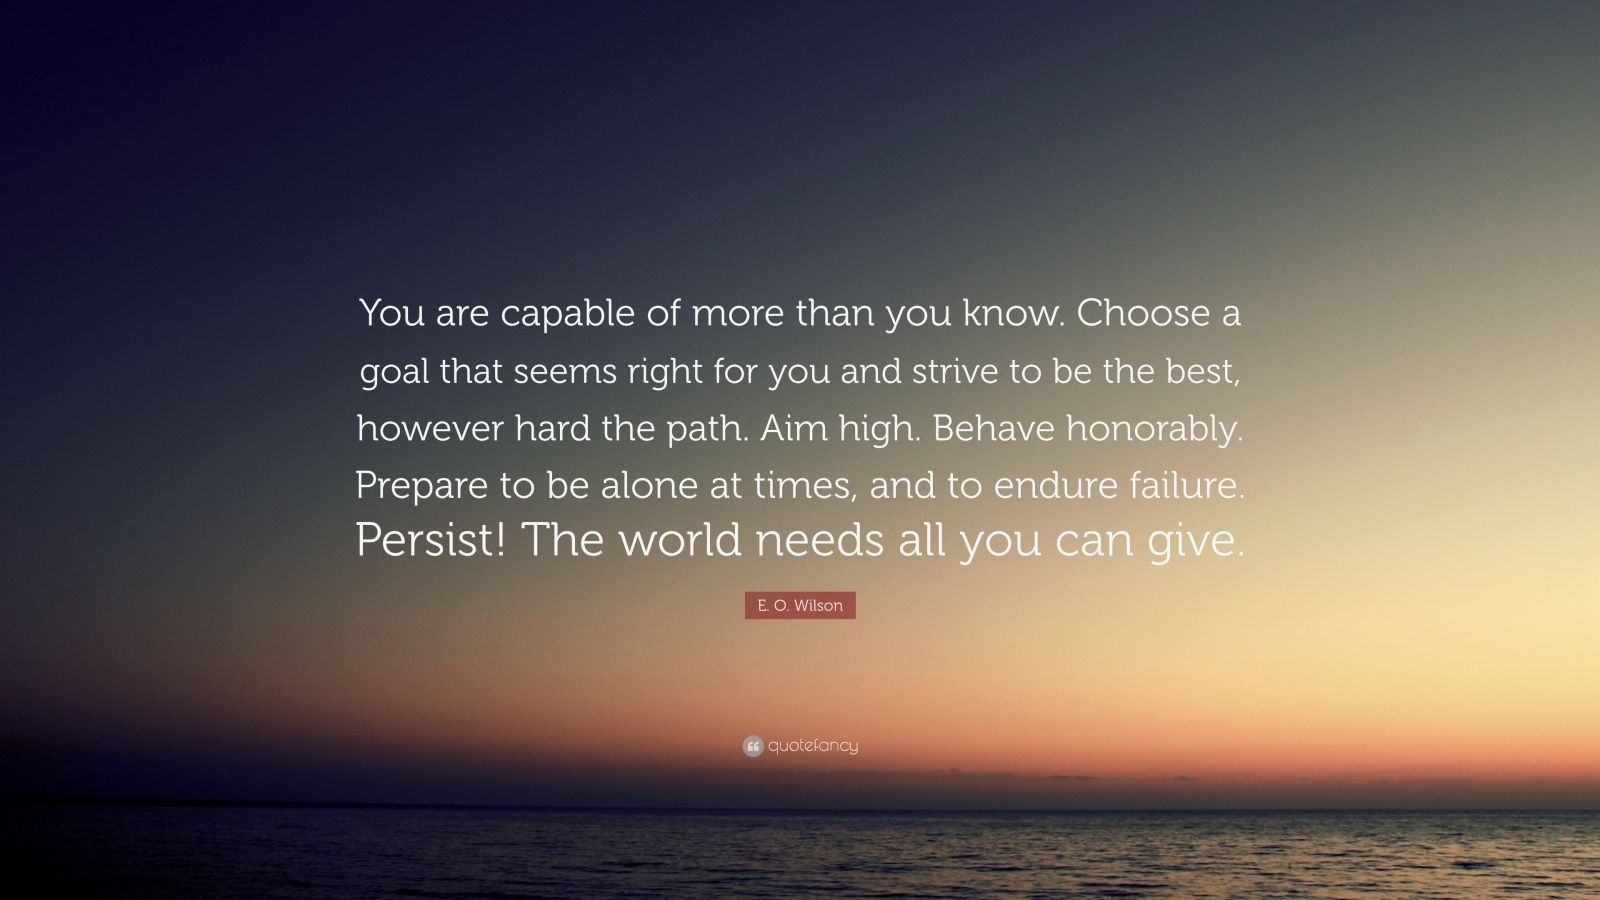 Steve Jobs Motivational Quotes Wallpaper E O Wilson Quote You Are Capable Of More Than You Know